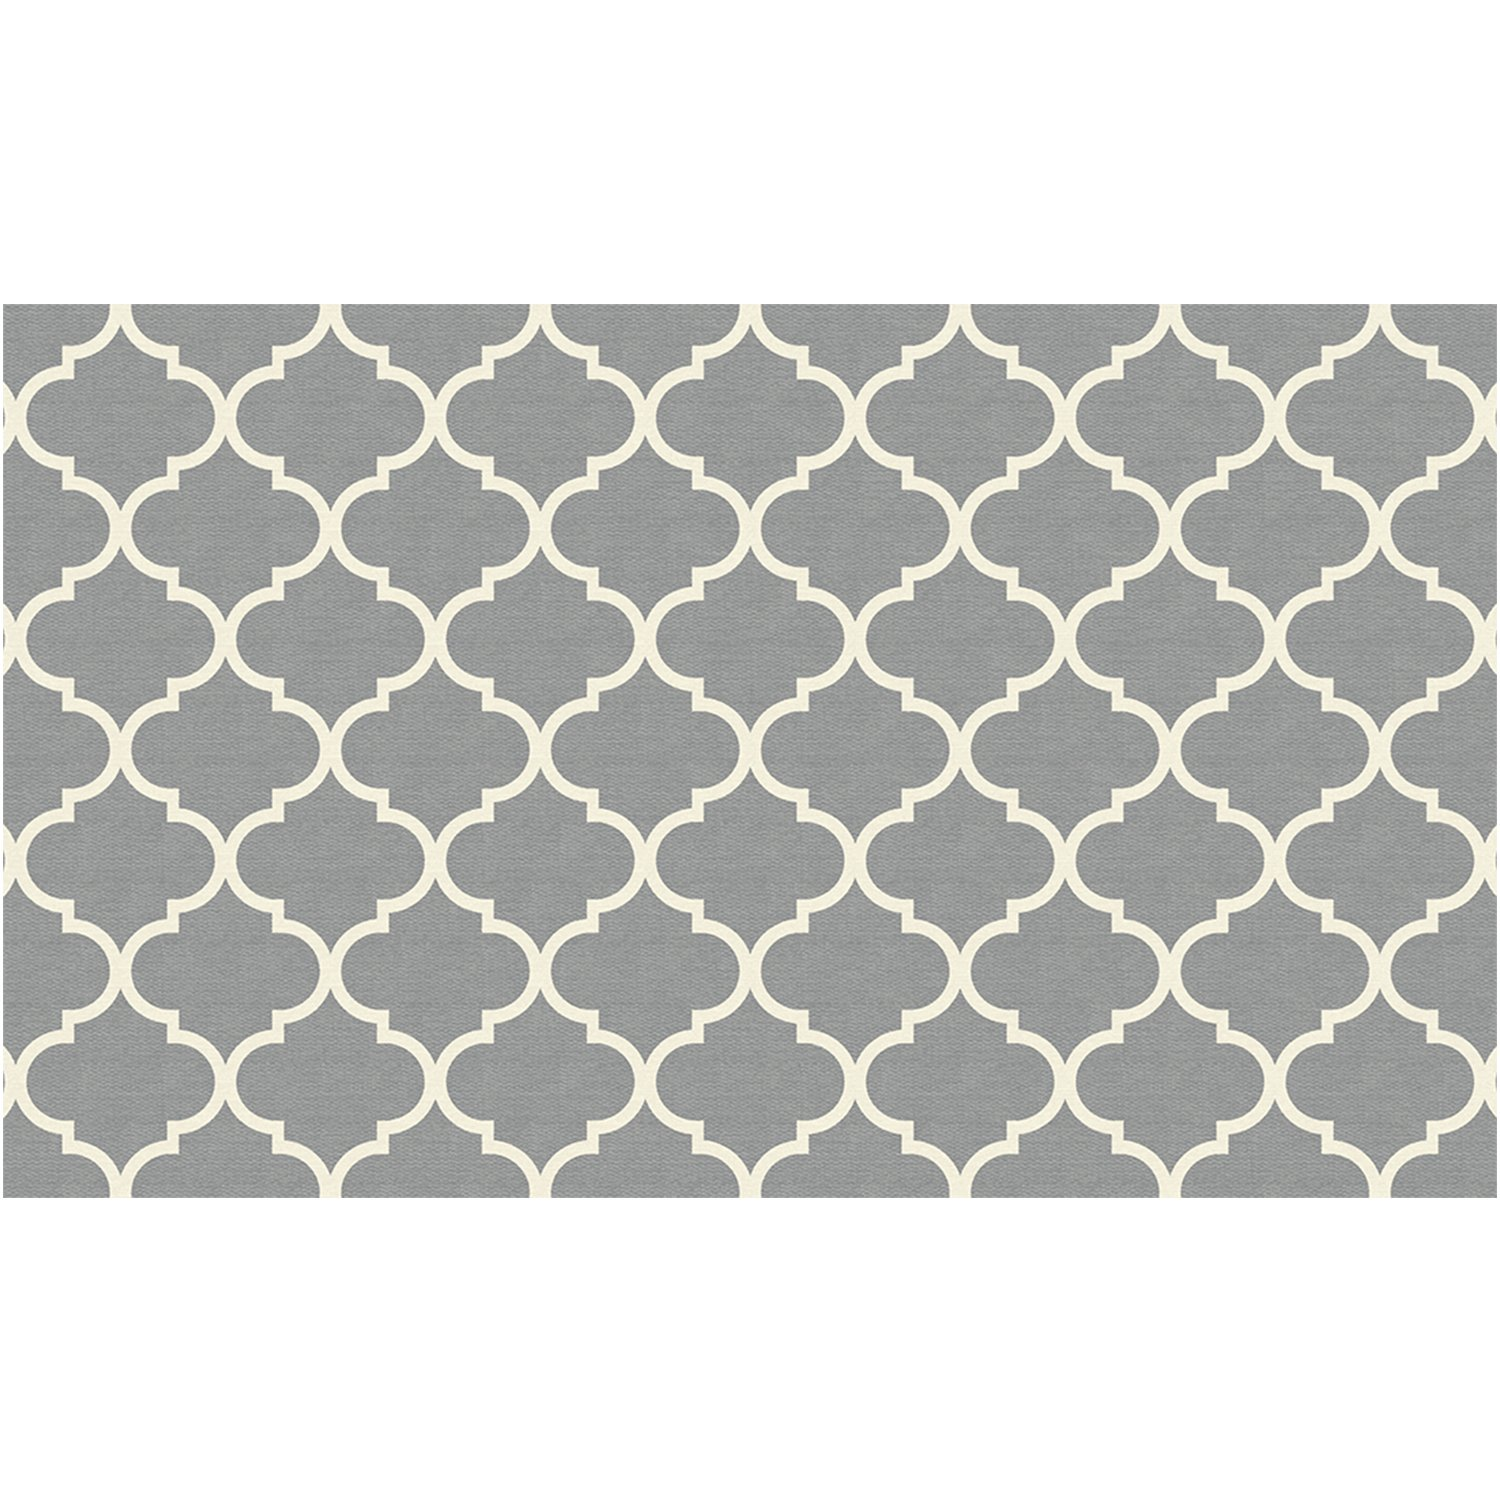 RUGGABLE Washable Stain Resistant Pet Dog Accent Rug for Indoor/Outdoor - Moroccan Trellis Light Grey 3' x 5' Accent Rug